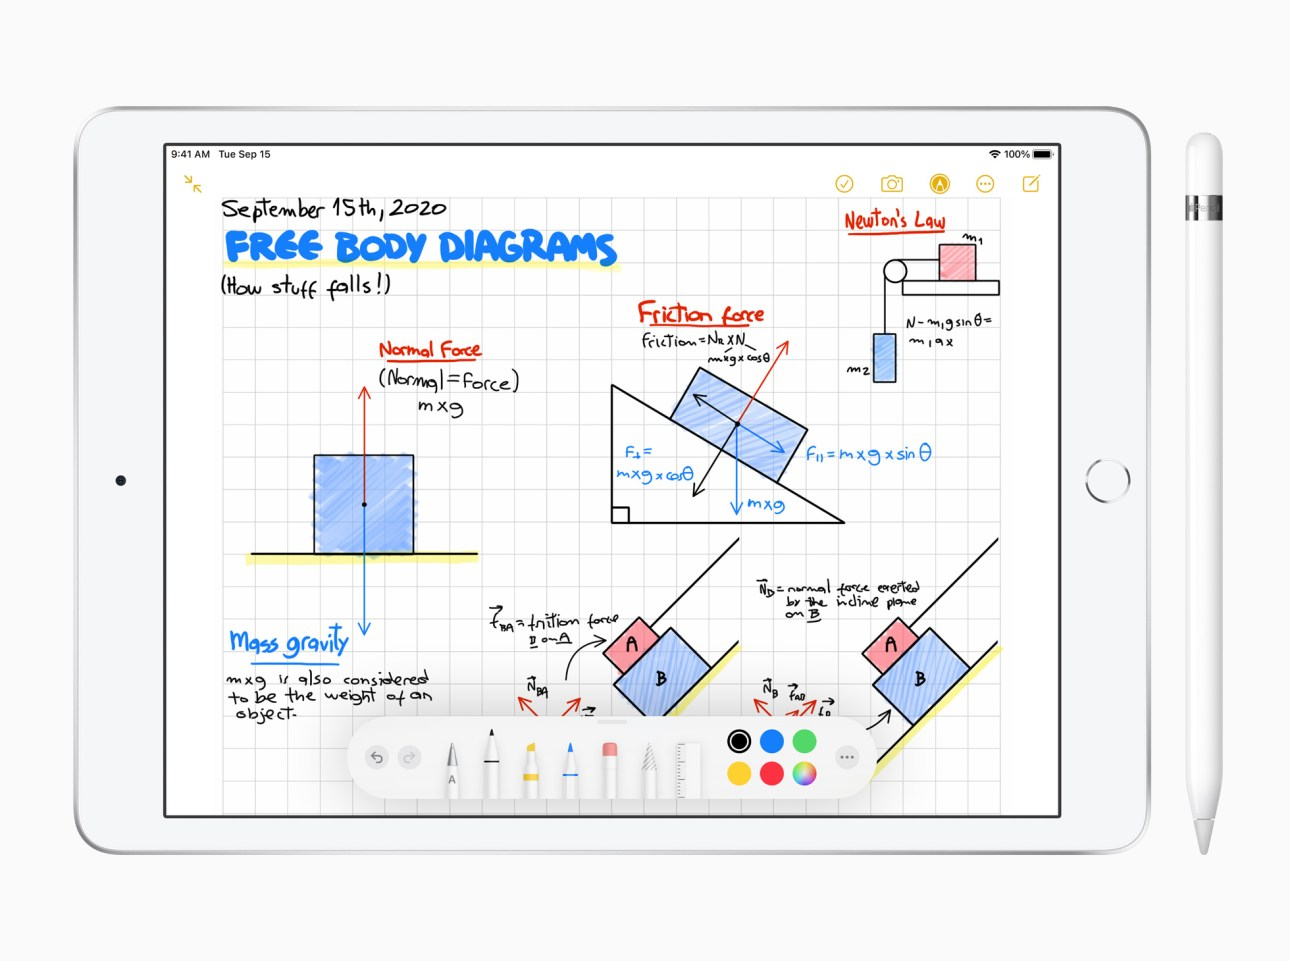 Apple Launched Eighth Generation iPad 10.2-inch with Powerful A12 Bionic Chip